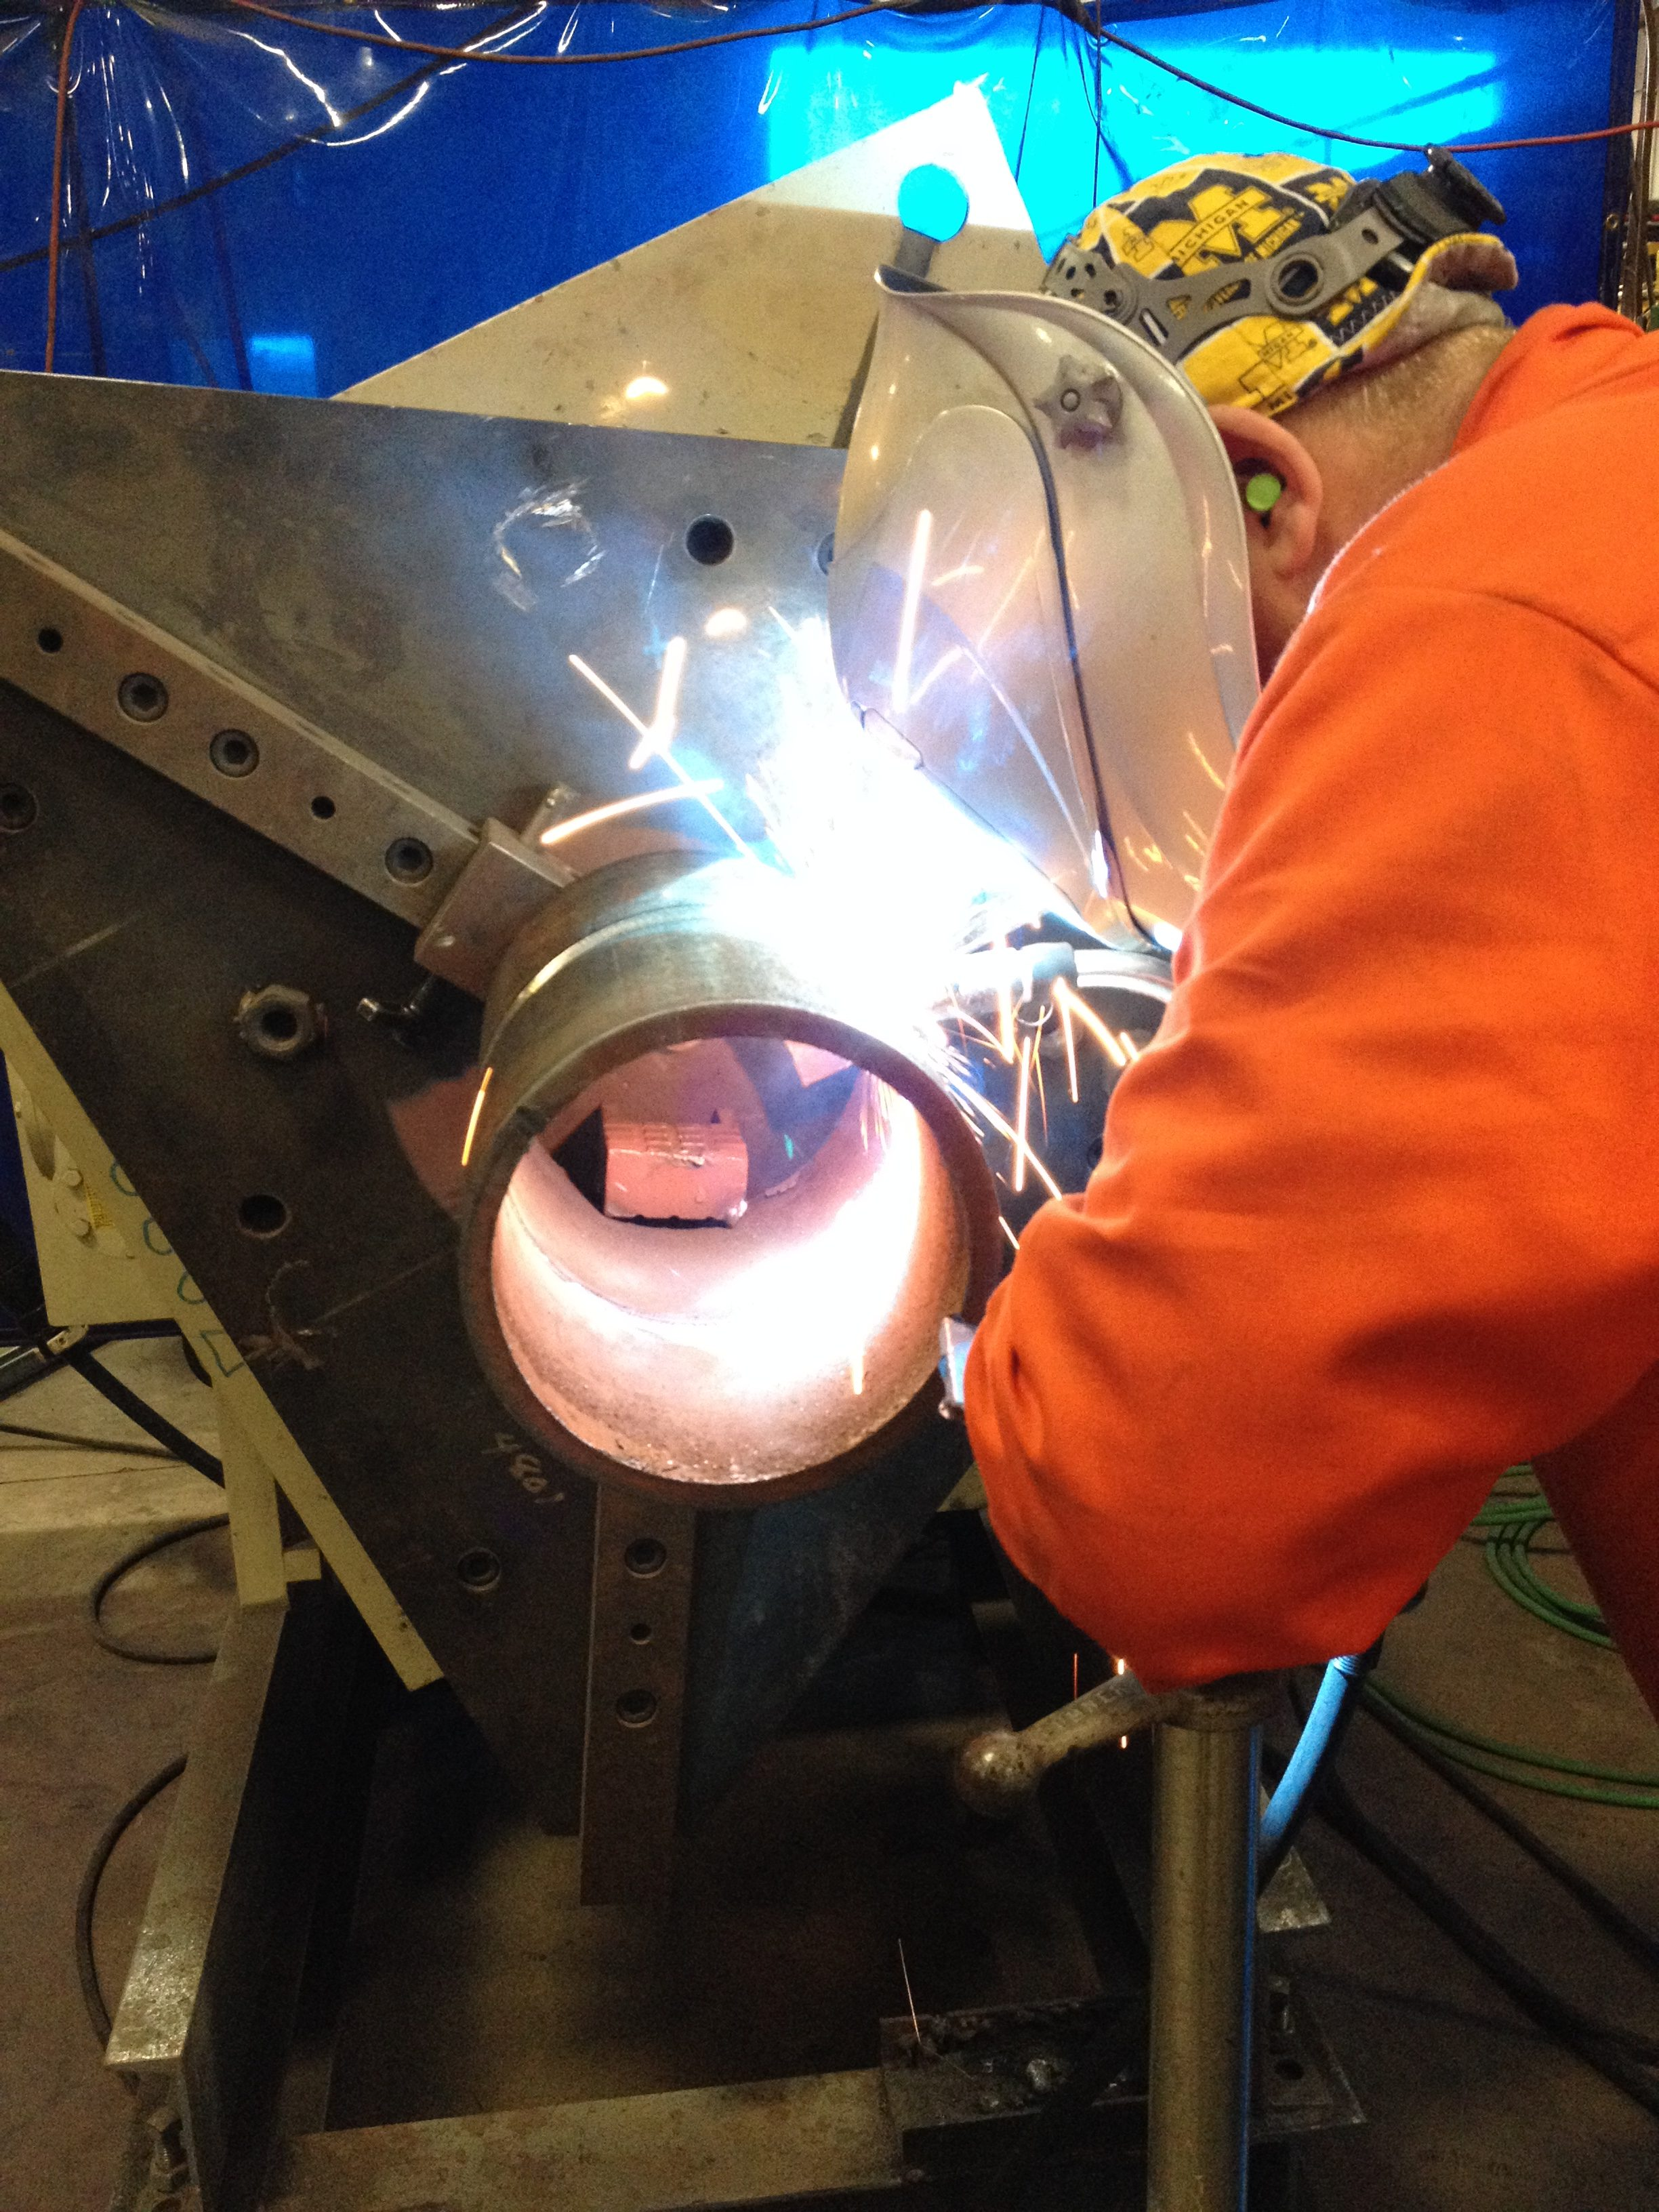 Welder performance qualifications complement the use of qualified welding procedures in production.